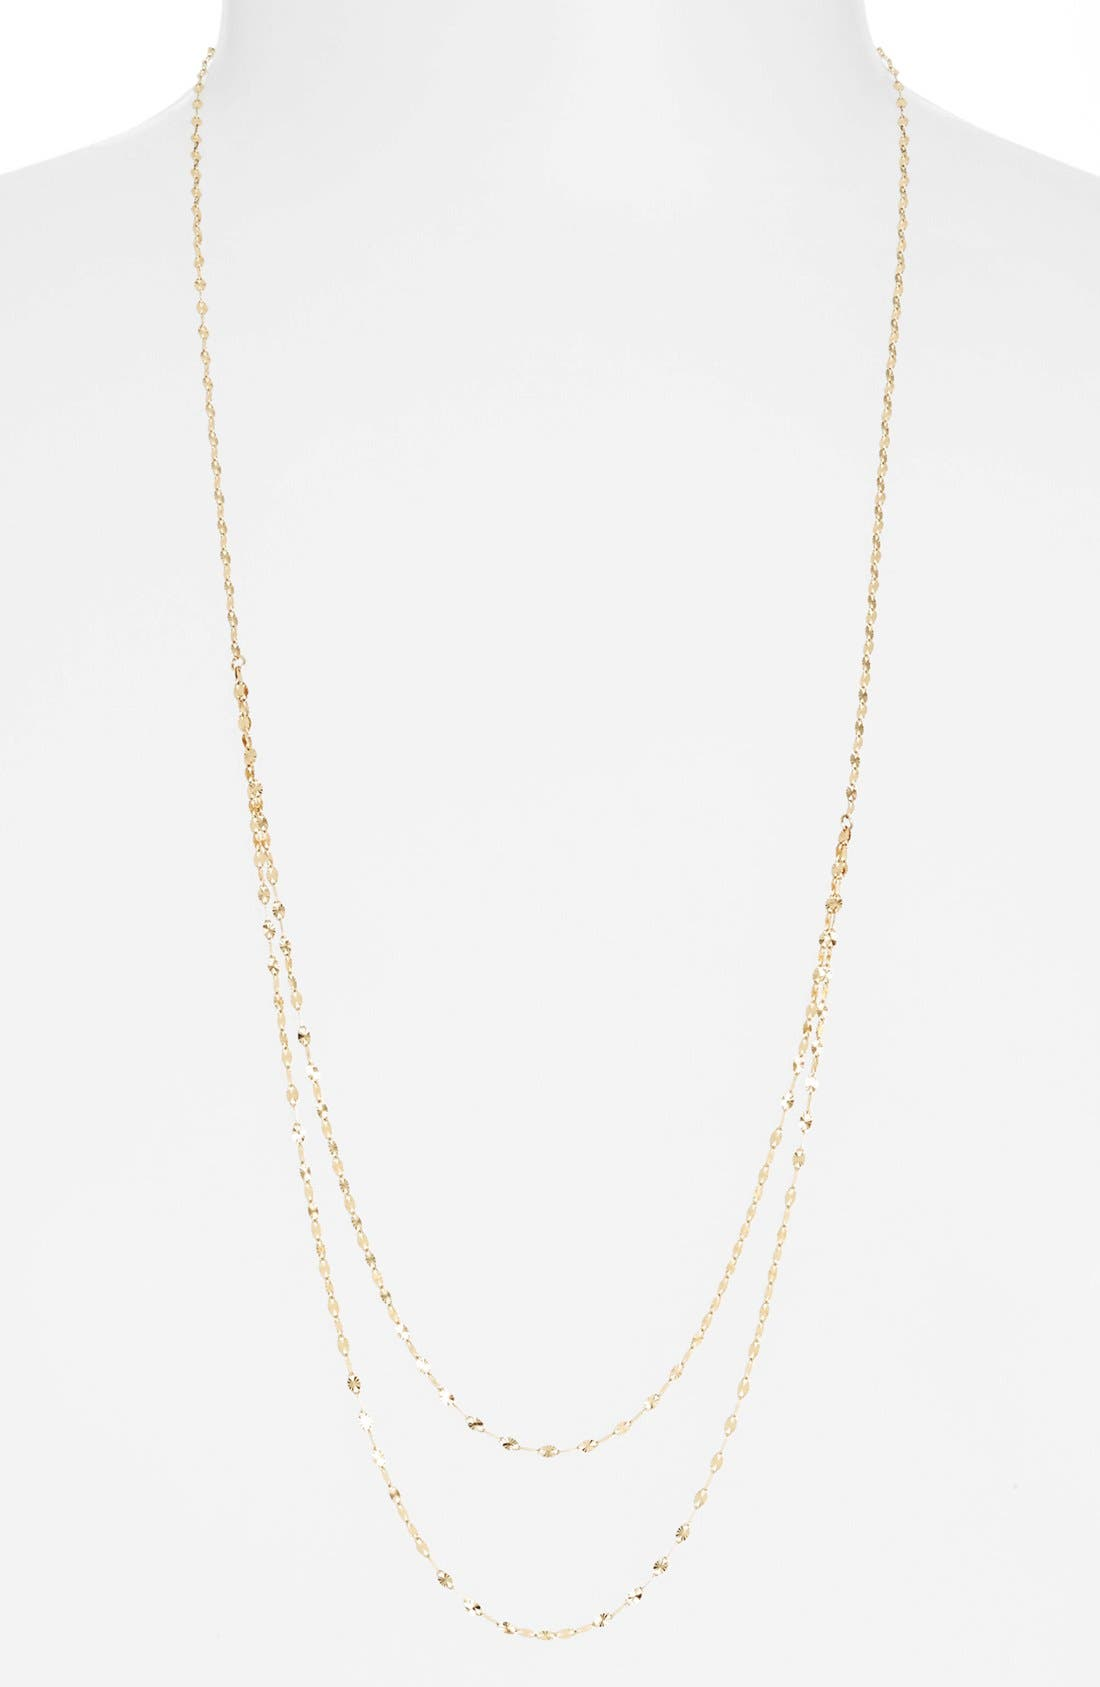 Main Image - Lana Jewelry 'Blush' Tiered Link Necklace